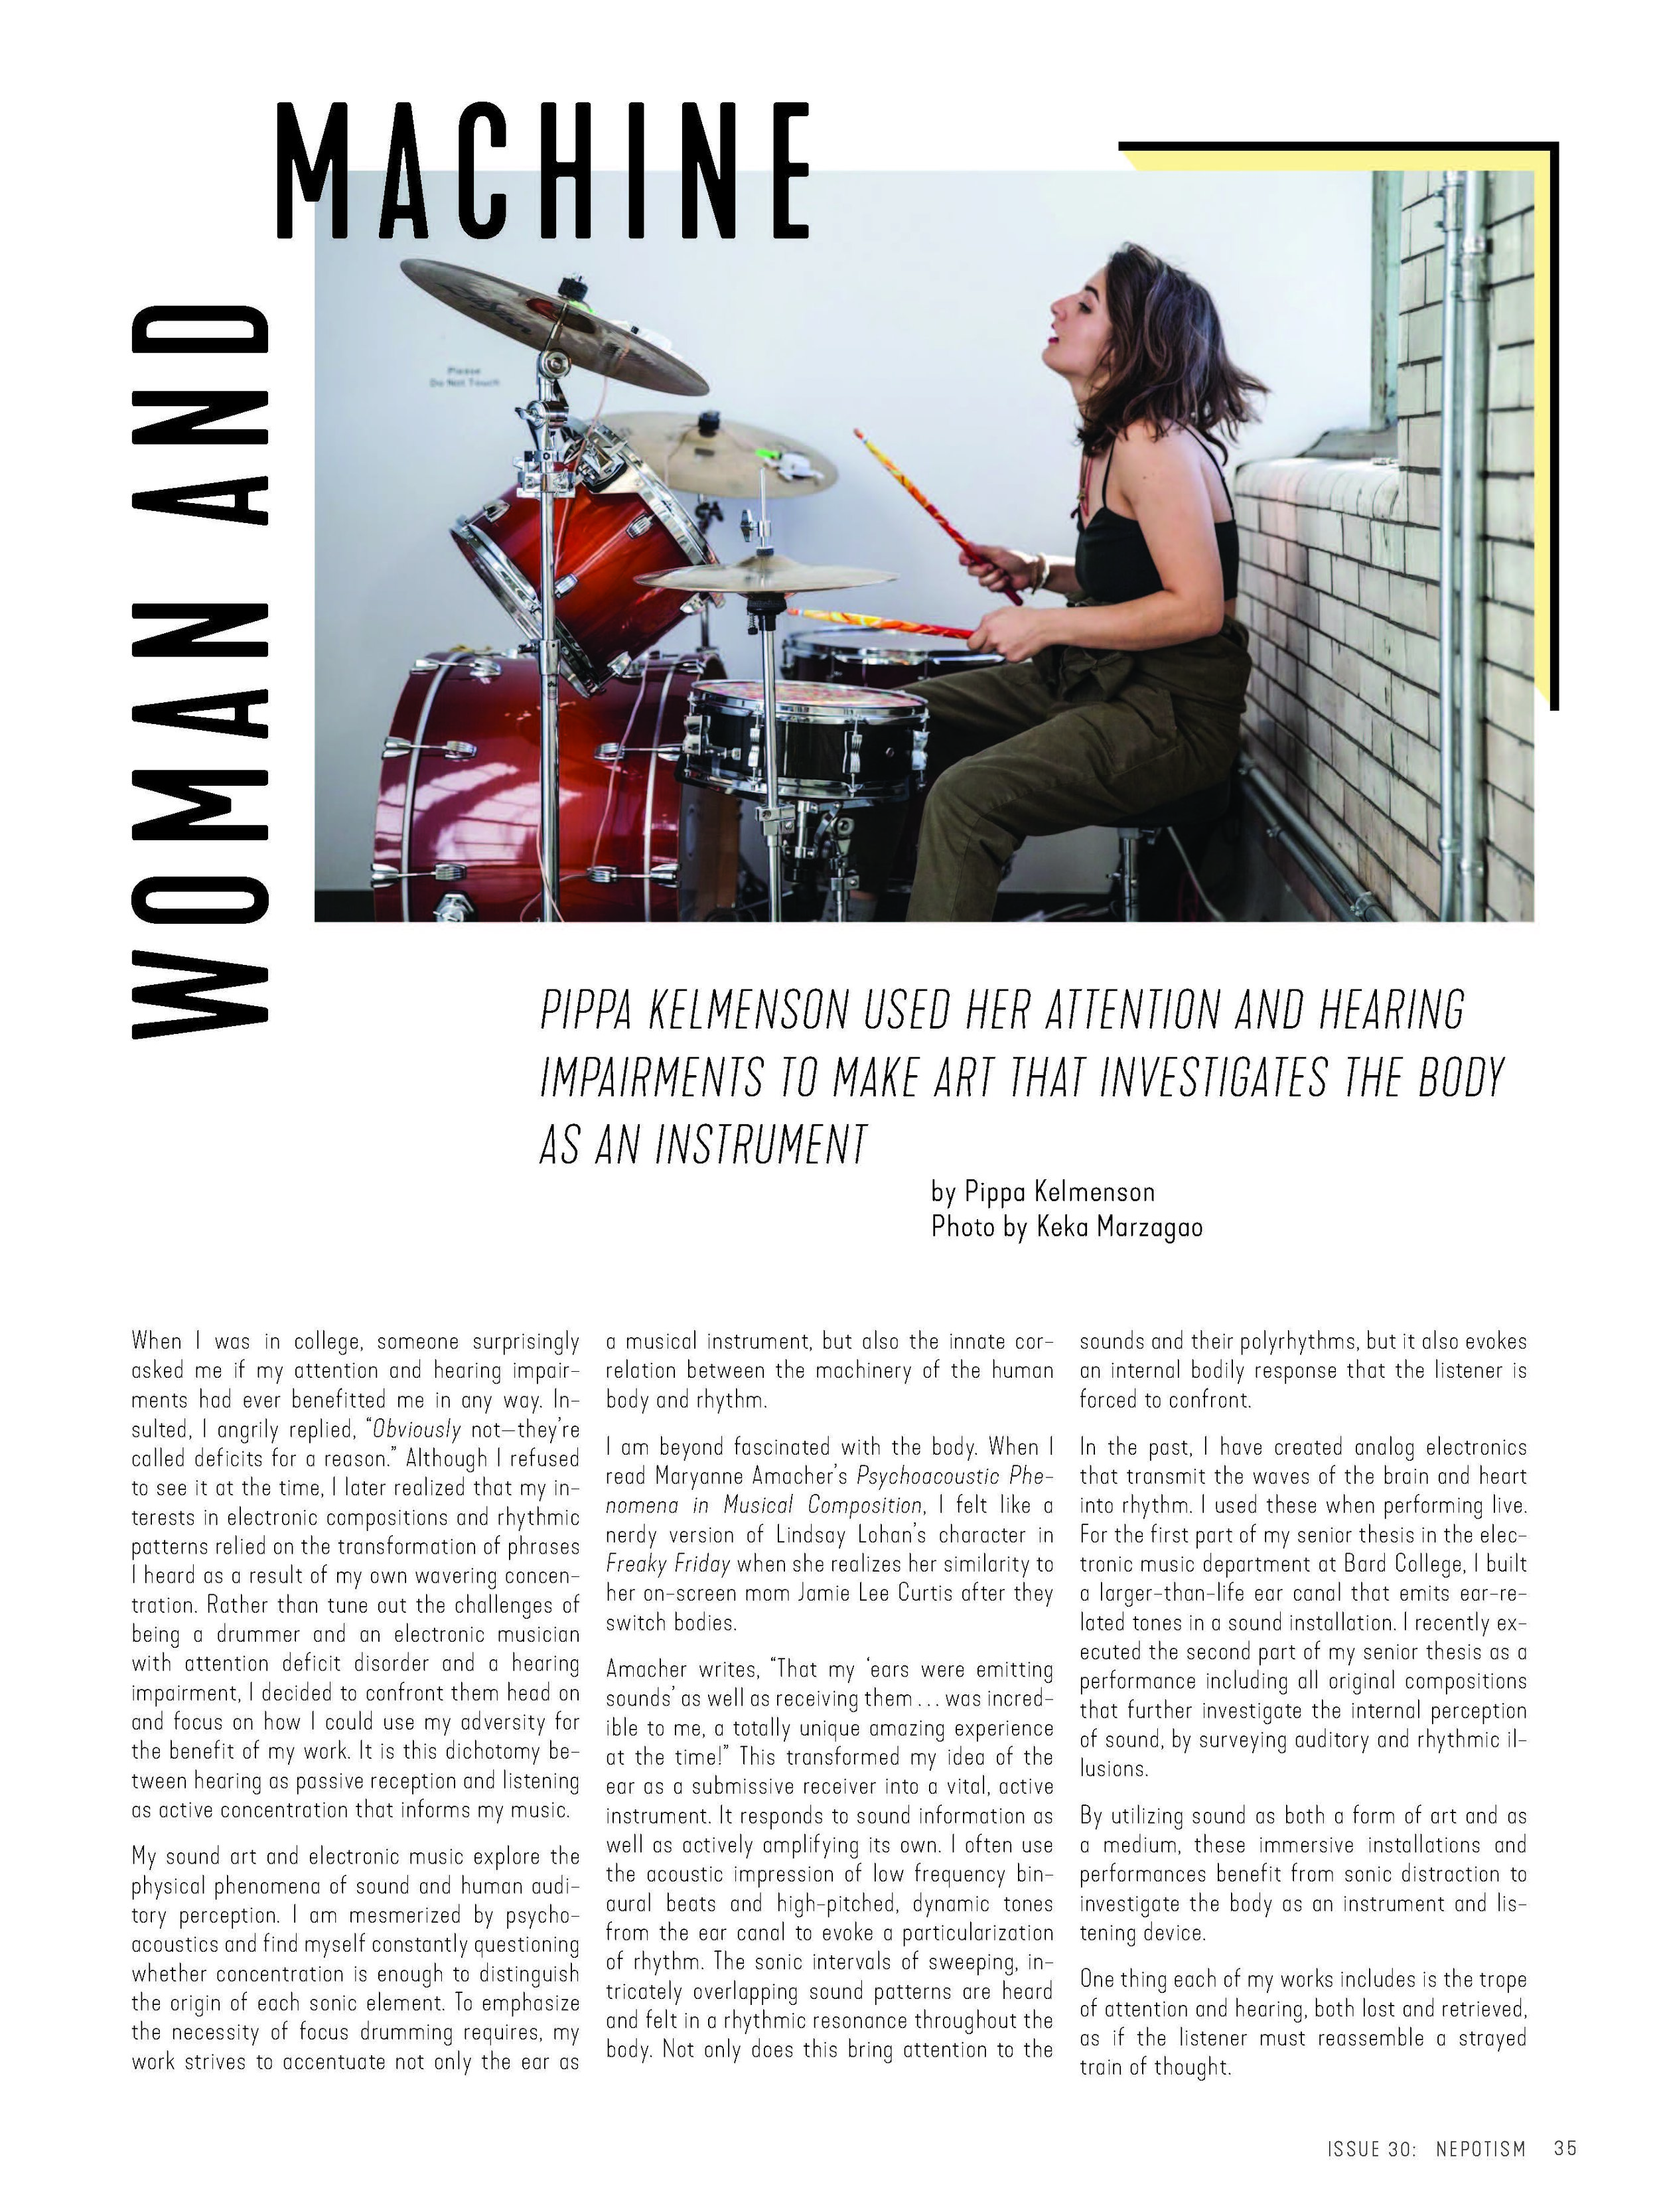 TomTomMag_Issue30_Nepotism_Page_35.jpg